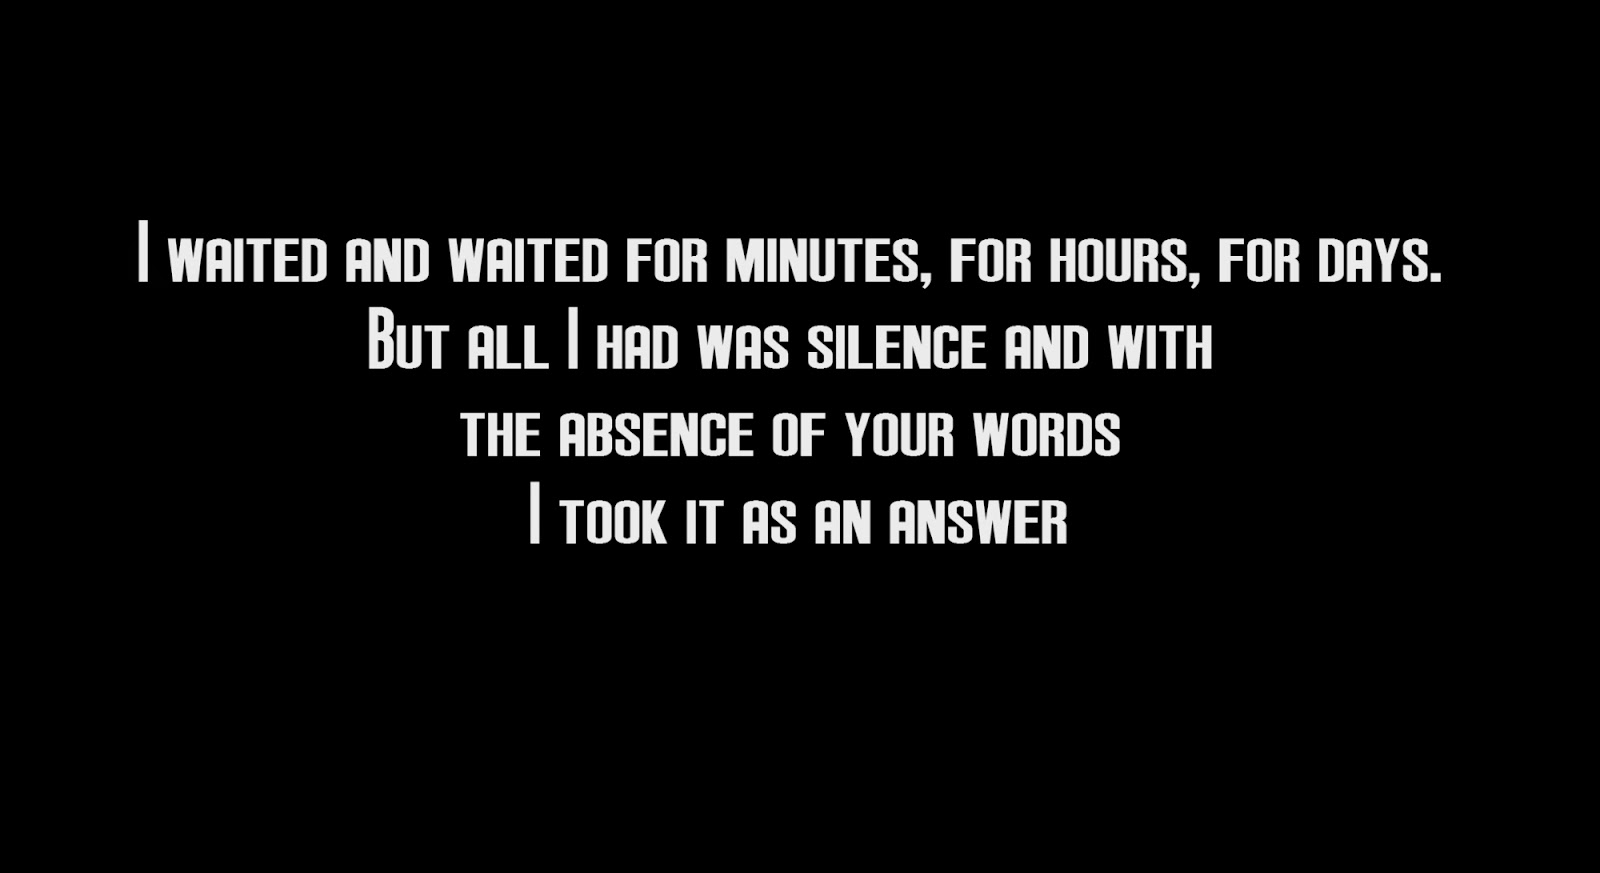 I waited and waited for minutes, for hours, for days. But all I had was silence and with the absence of your words I took it as an answer